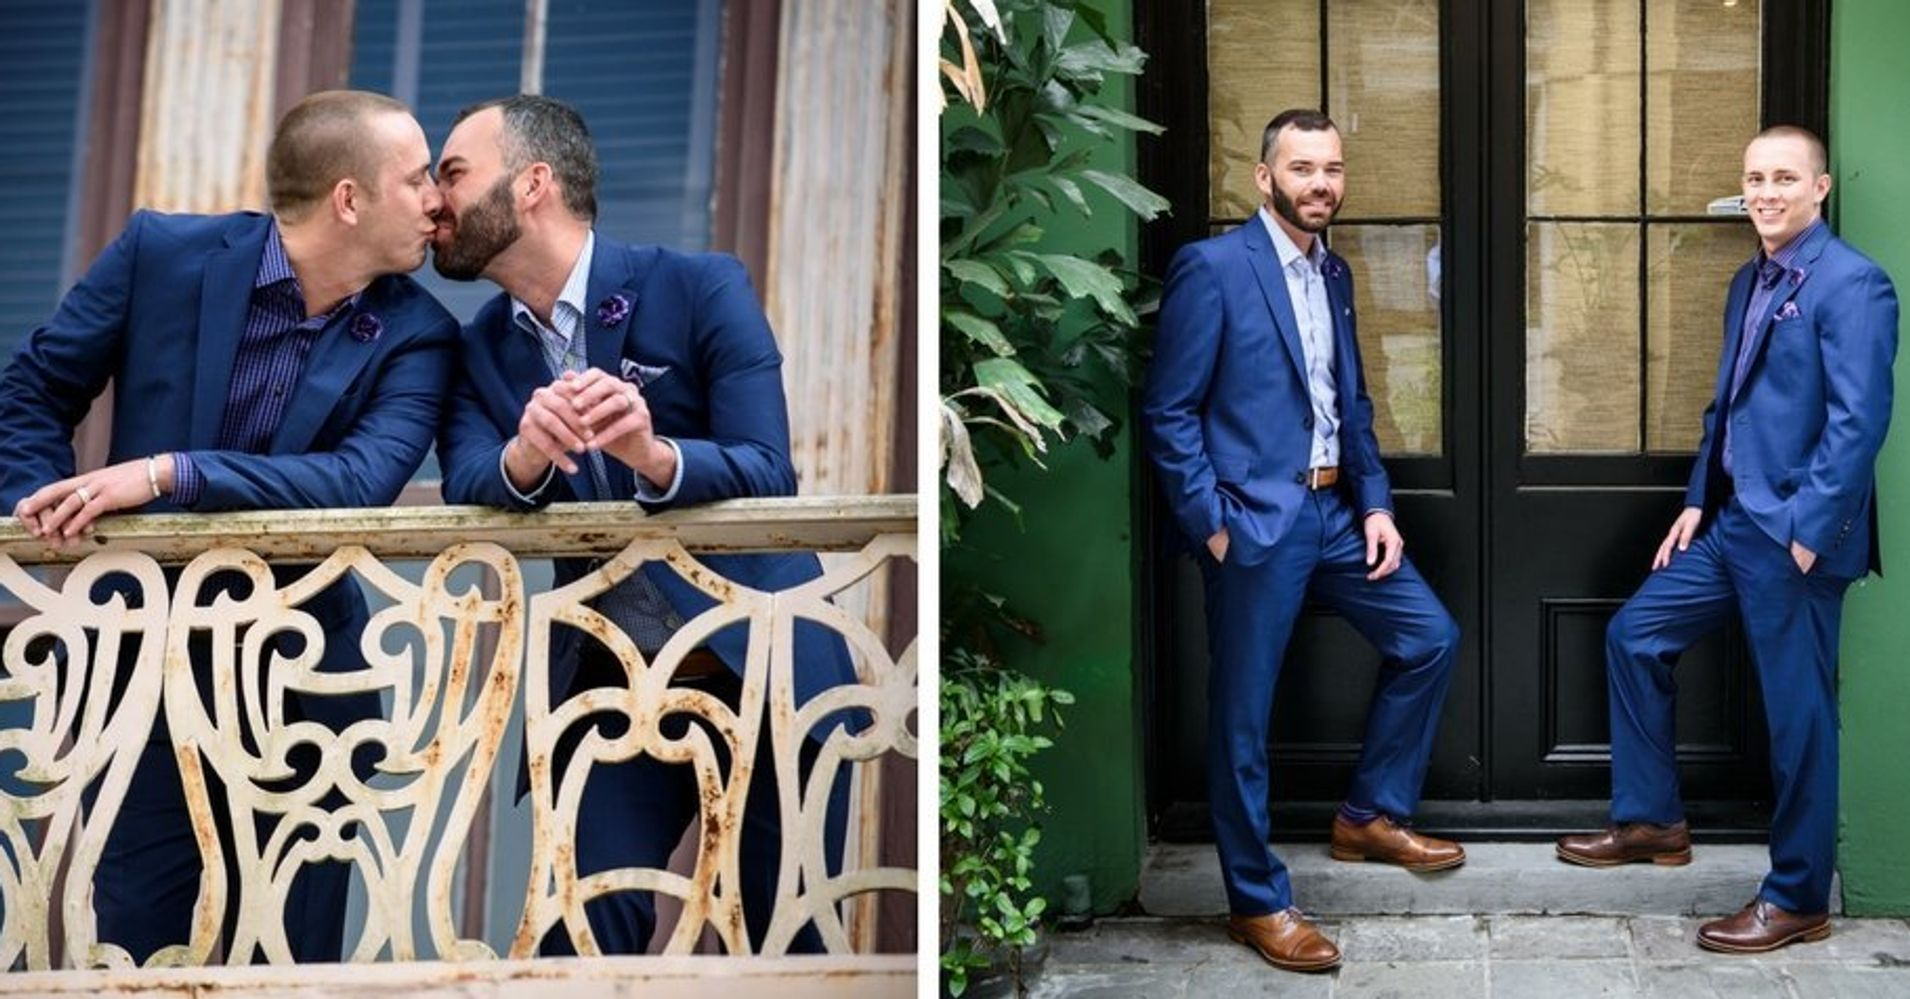 This New Orleans Courthouse Wedding Is The Epitome Of Low Key Elegance Huffpost Life